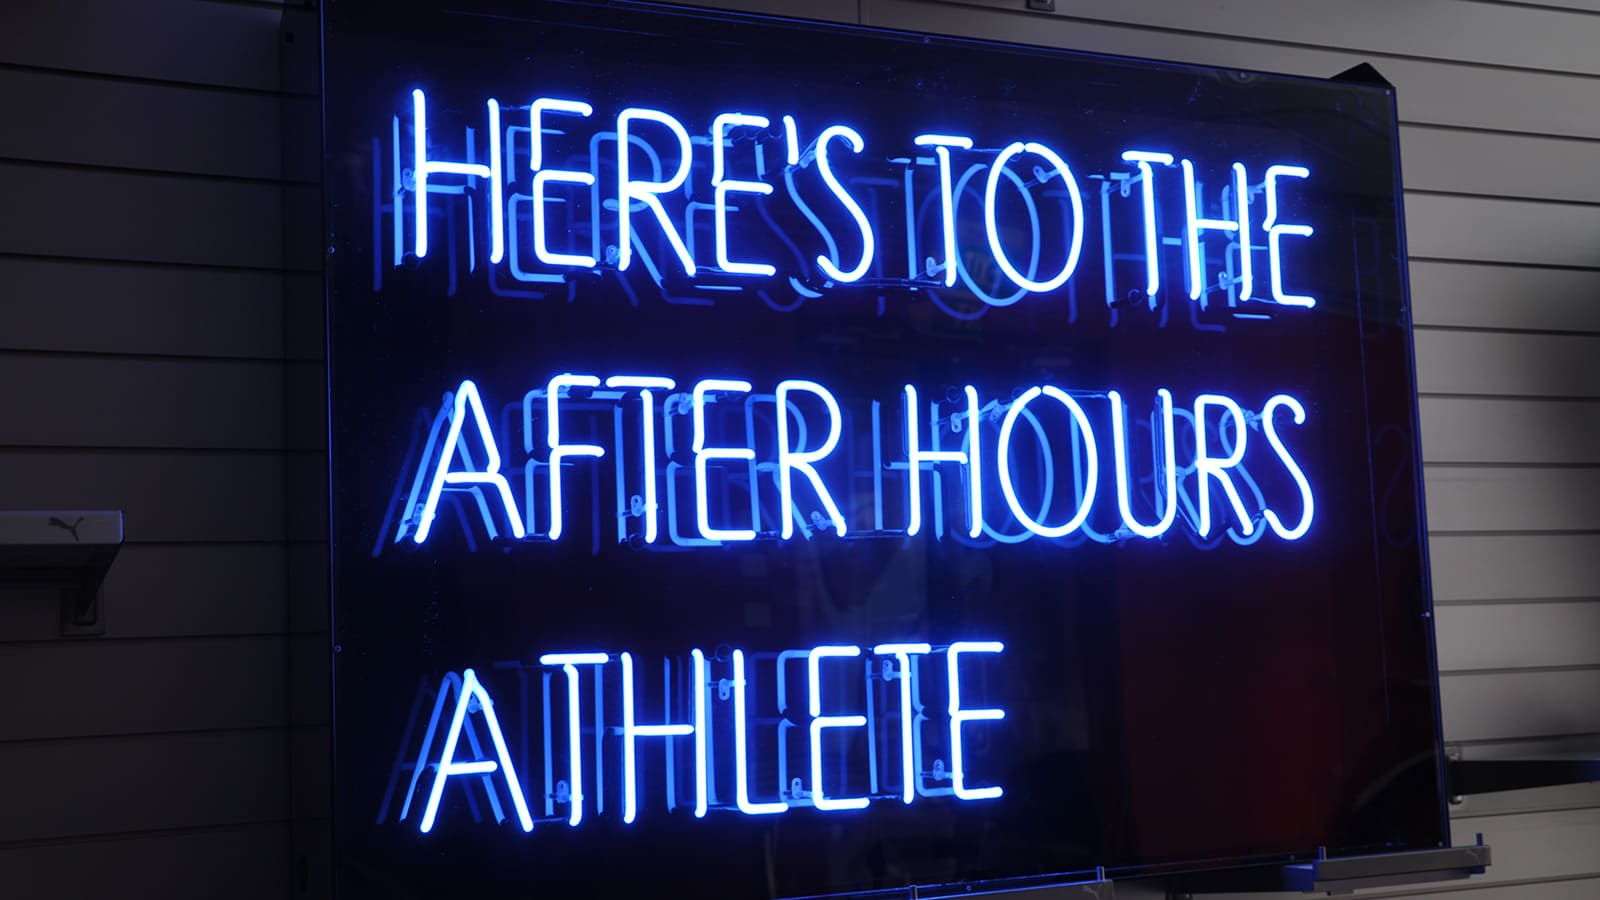 neon-after-hours-athlete